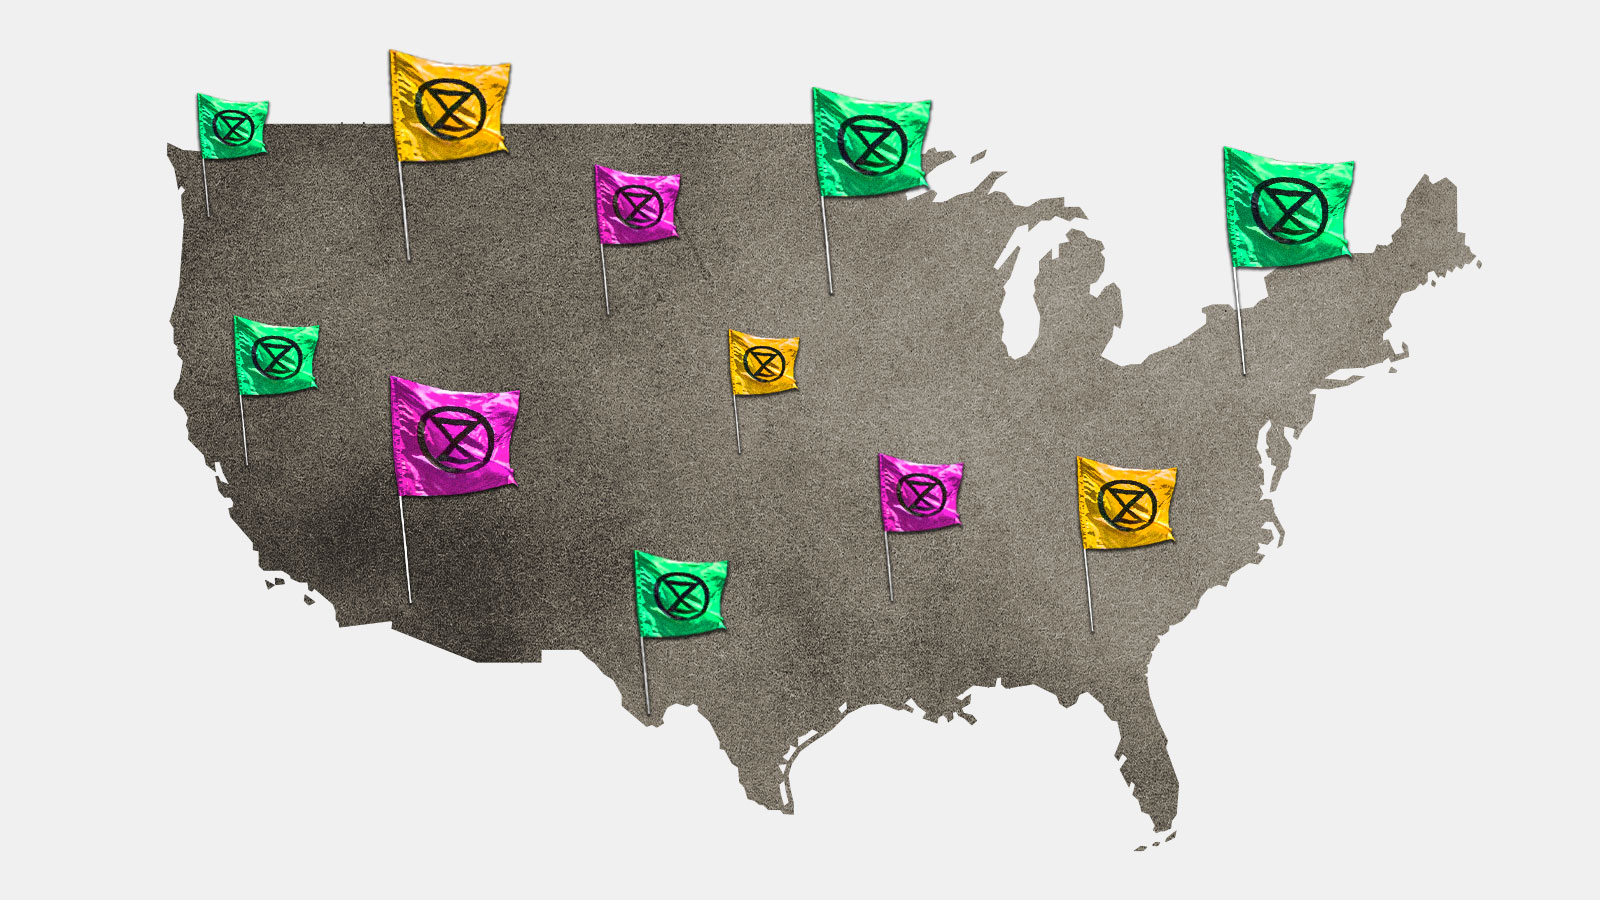 A map of the United States with Extinction Rebellion flags on it